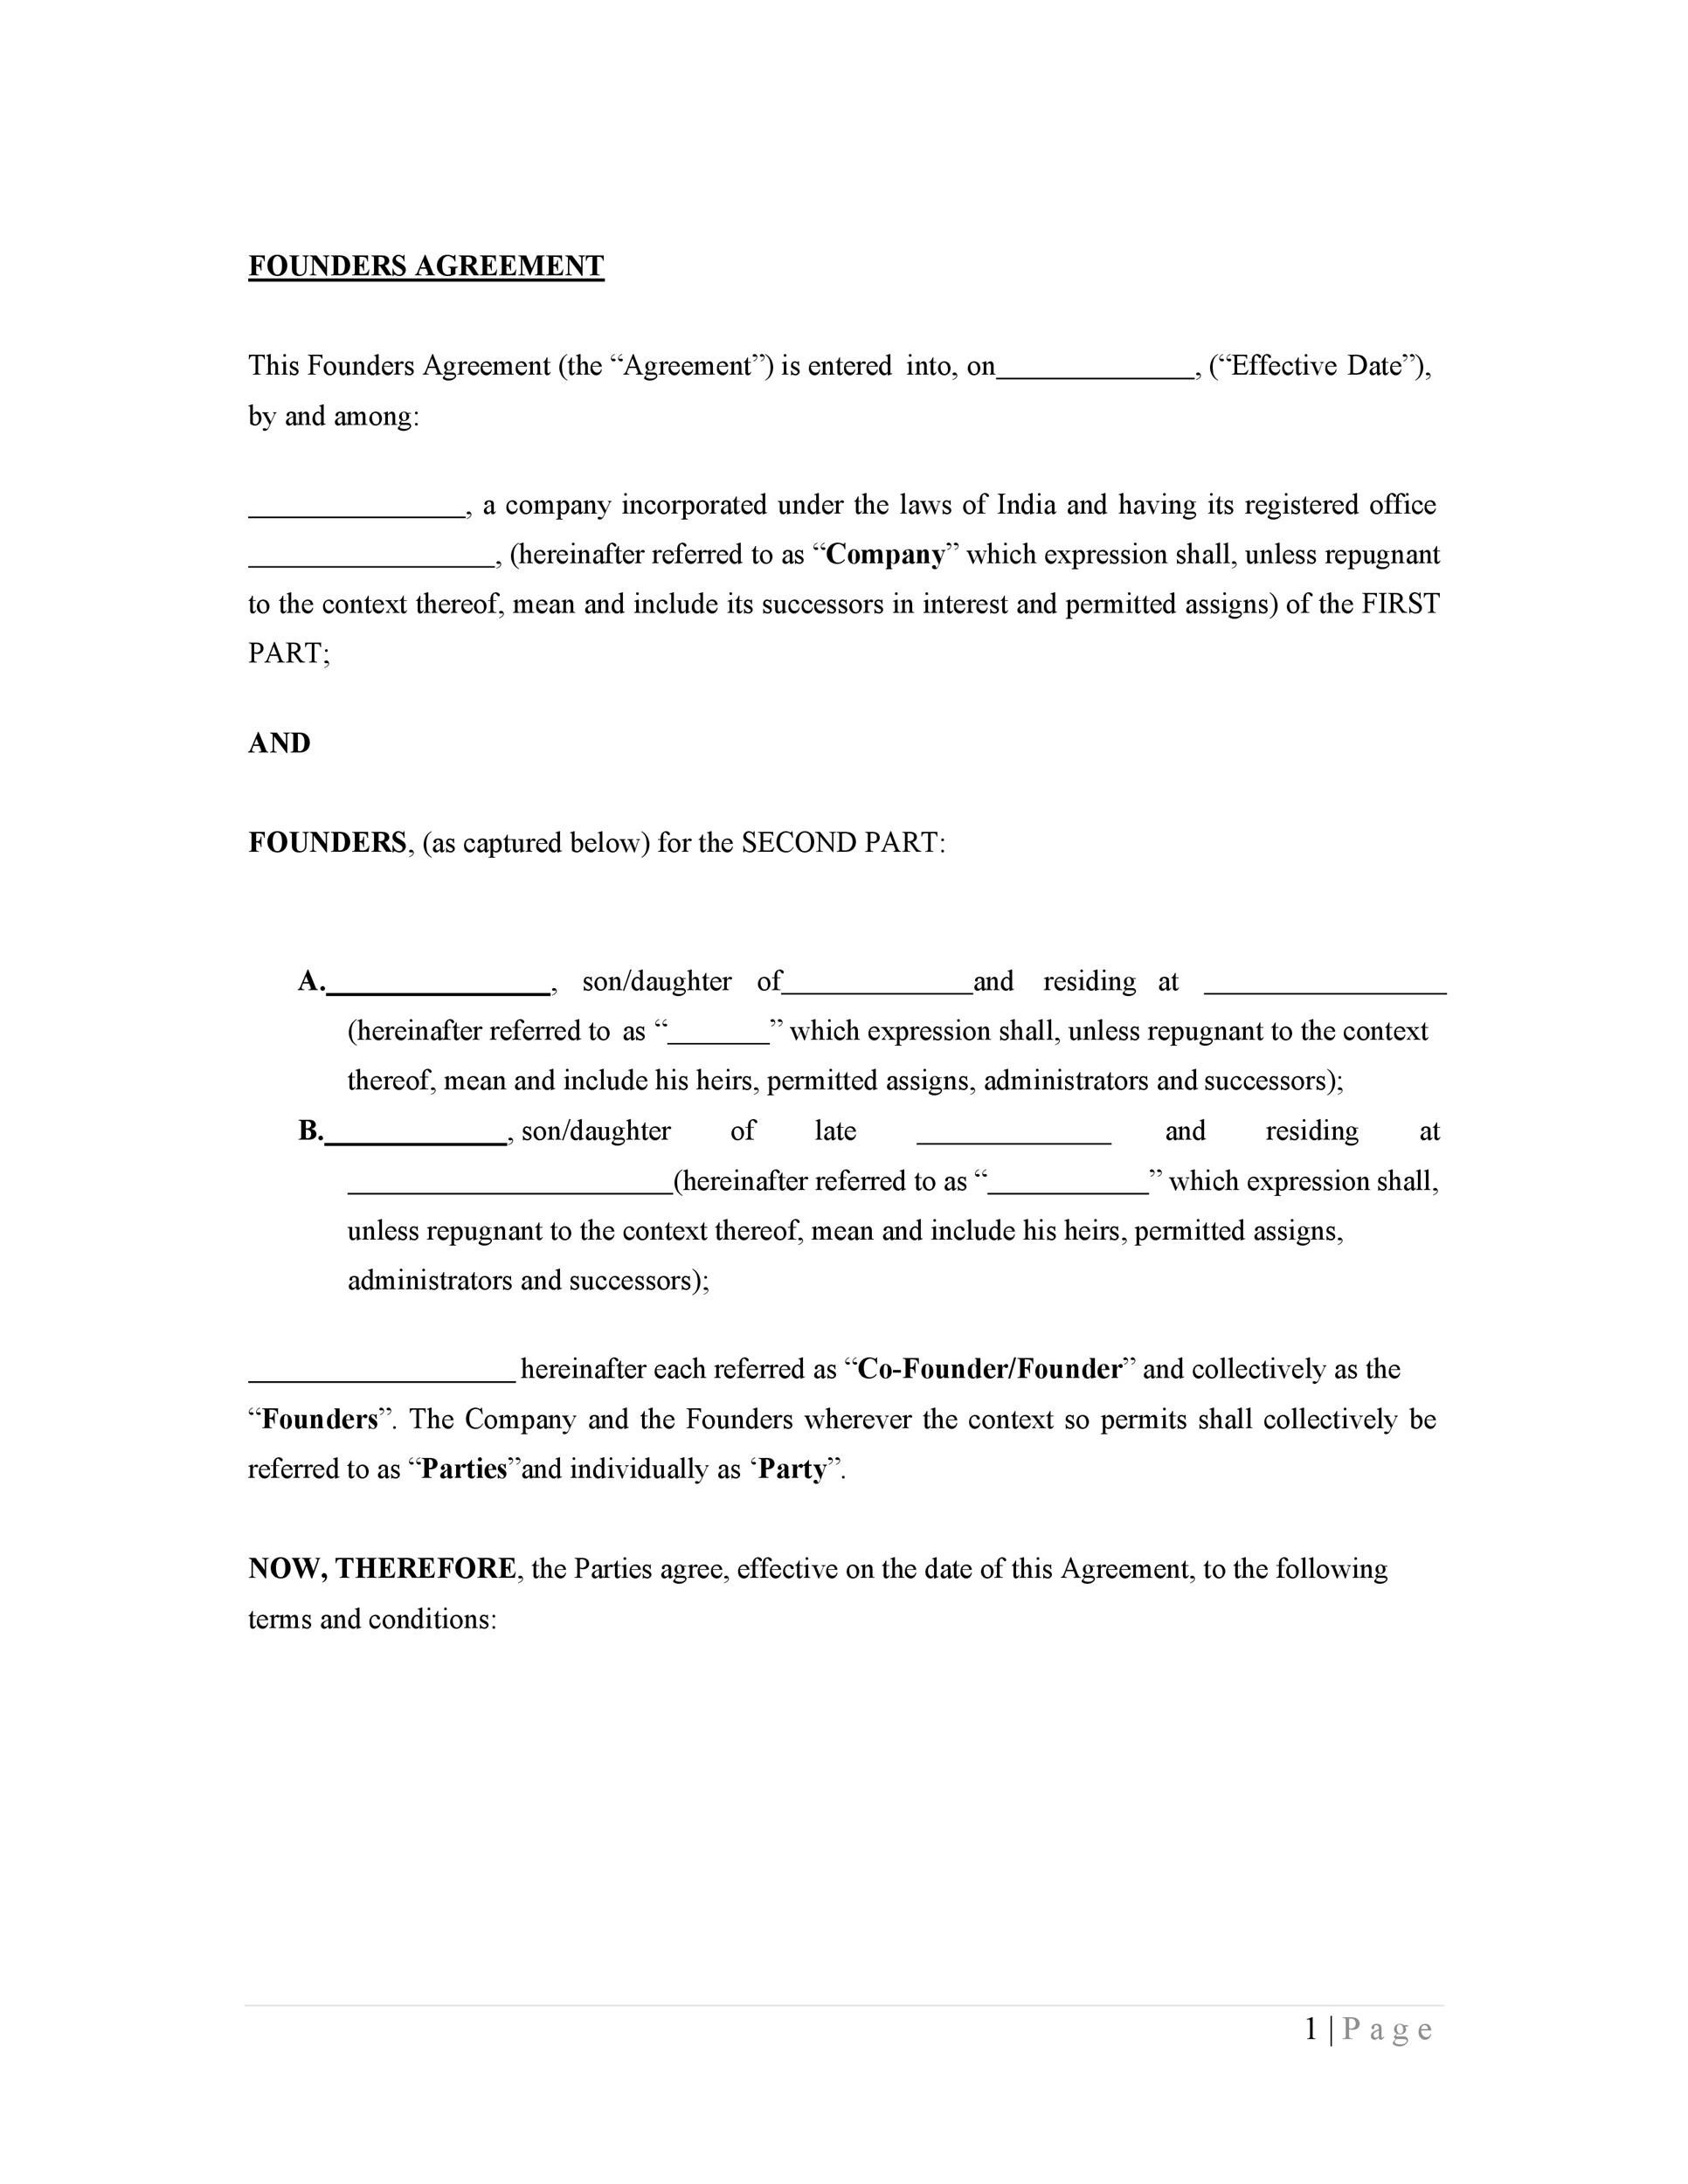 Free founders agreement 05